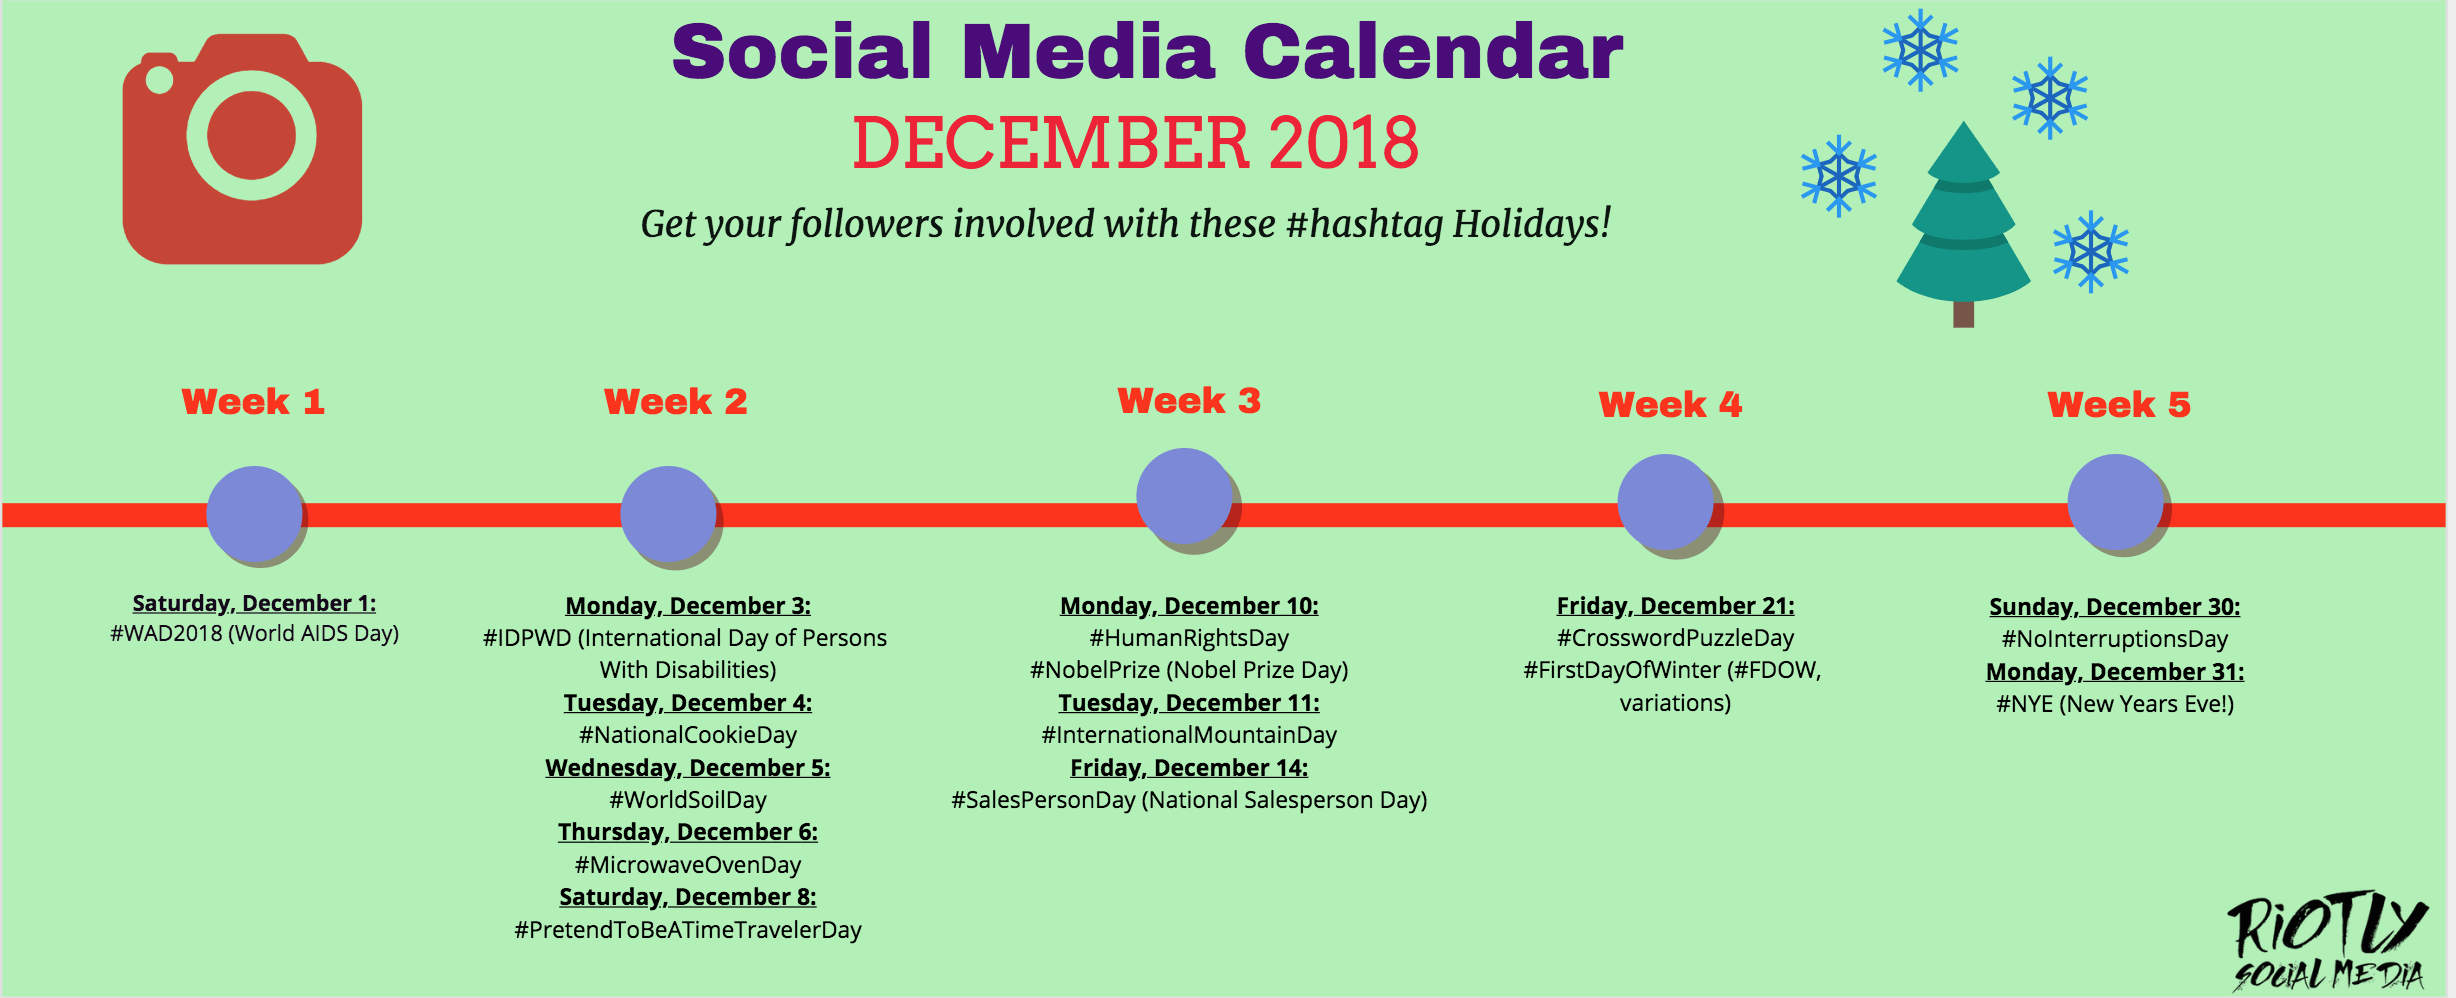 81 Social Media #Hashtag Holidays to post in 2018. Keep your followers engaged all year round! www.riotlysocialmedia.com/blog/what-to-post-on-instagram